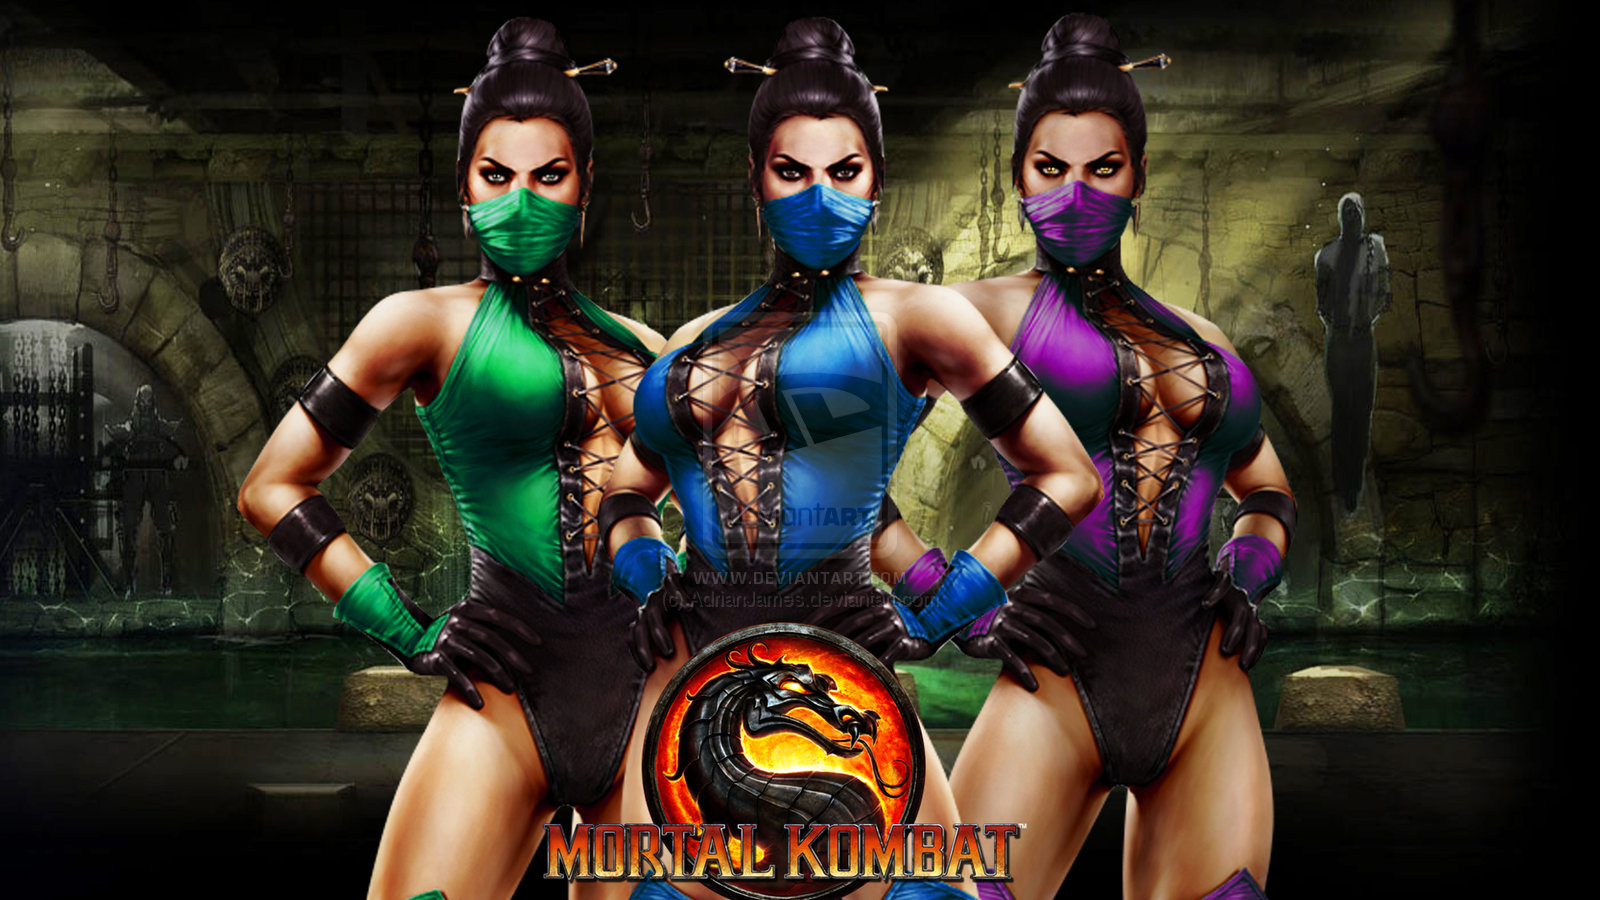 Hot video girl 3d download mortal kombat erotic scene